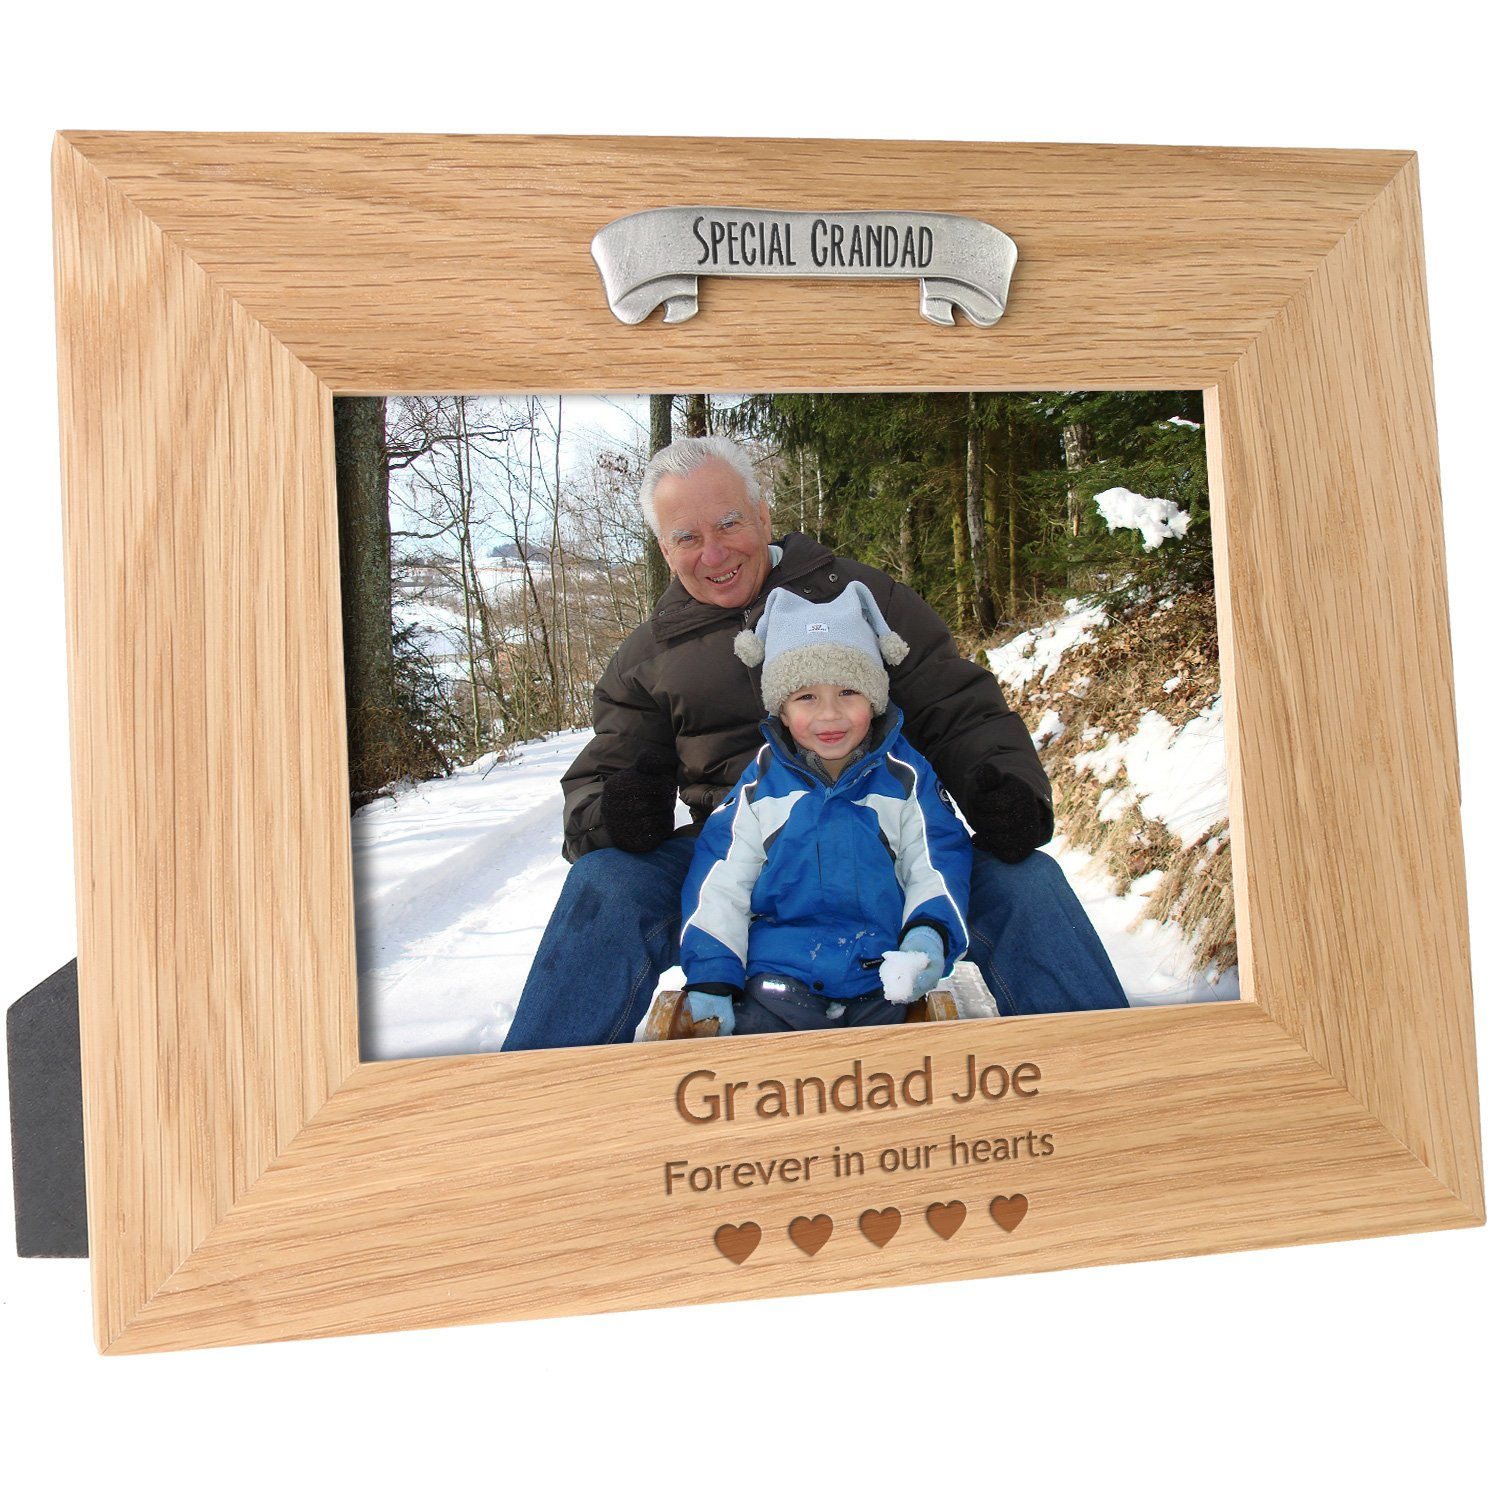 Deceased Special Grandad Memorial Personalised Engraved Solid Oak Photo Picture Frame Remembrance Gift De Walden